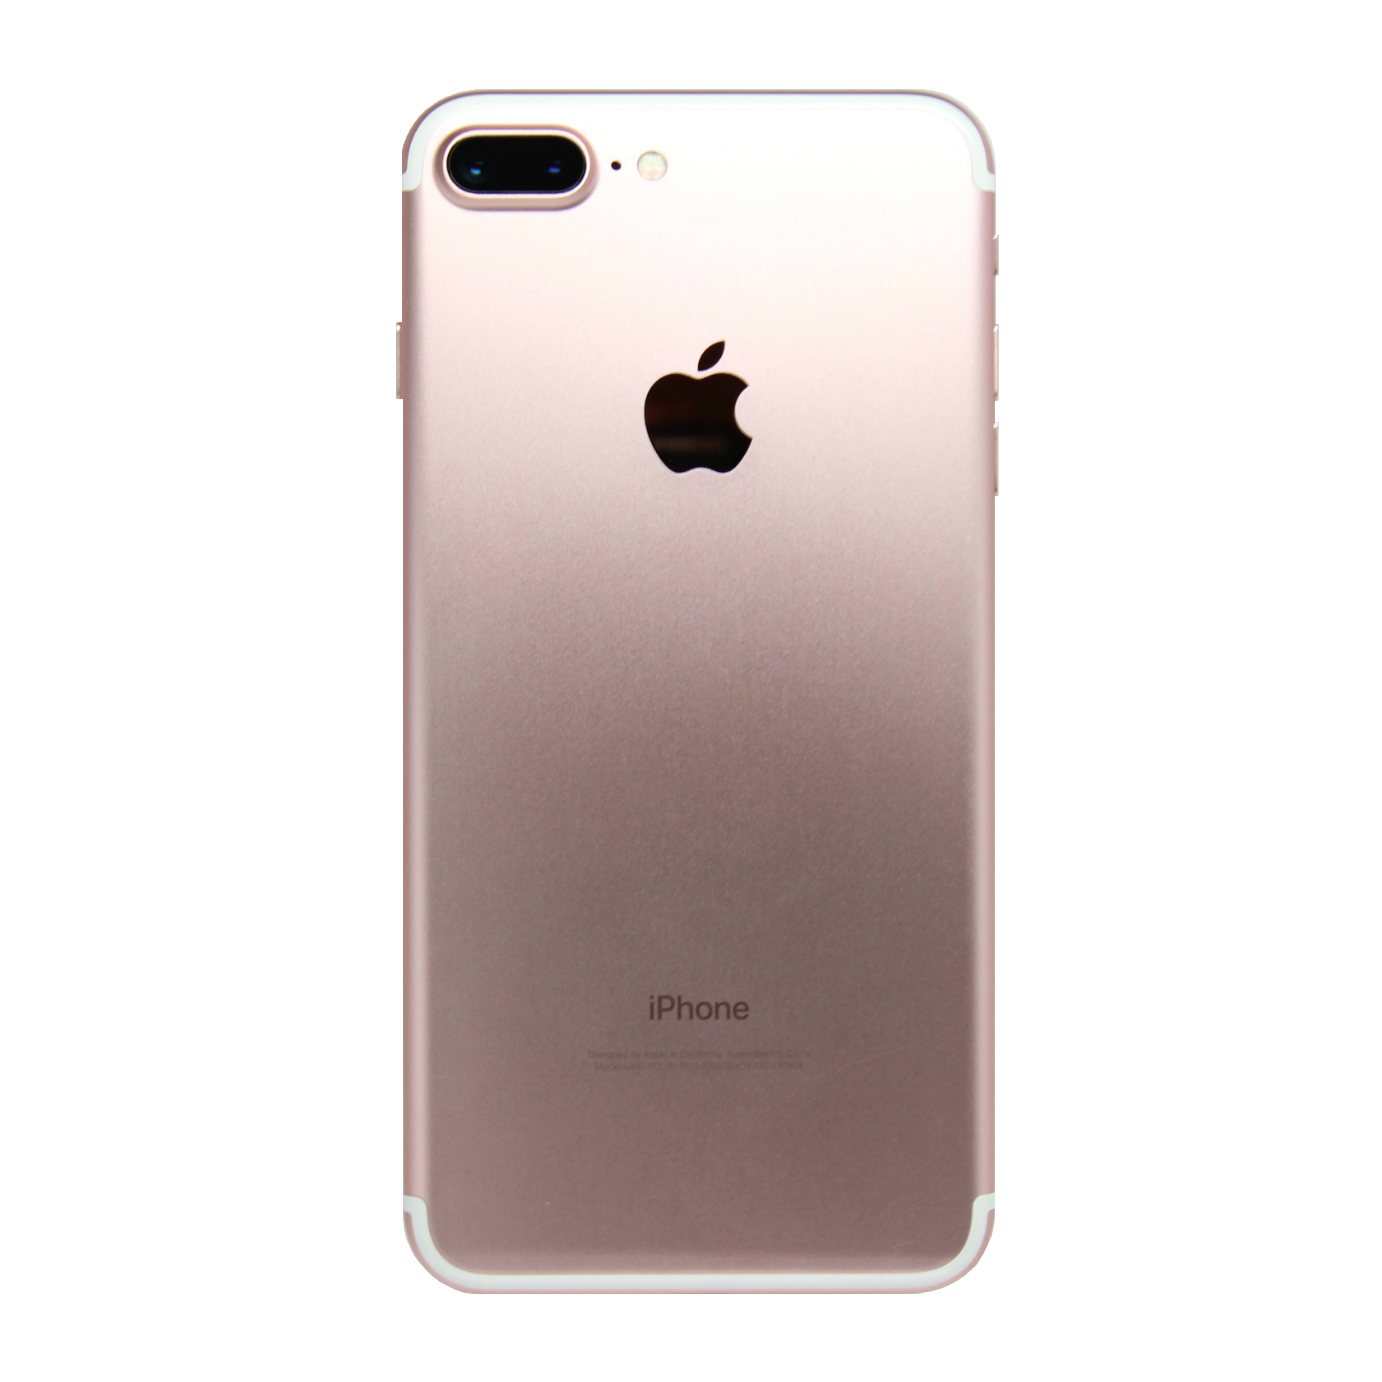 apple iphone 7 plus a1784 32gb smartphone gsm unlocked ebay. Black Bedroom Furniture Sets. Home Design Ideas